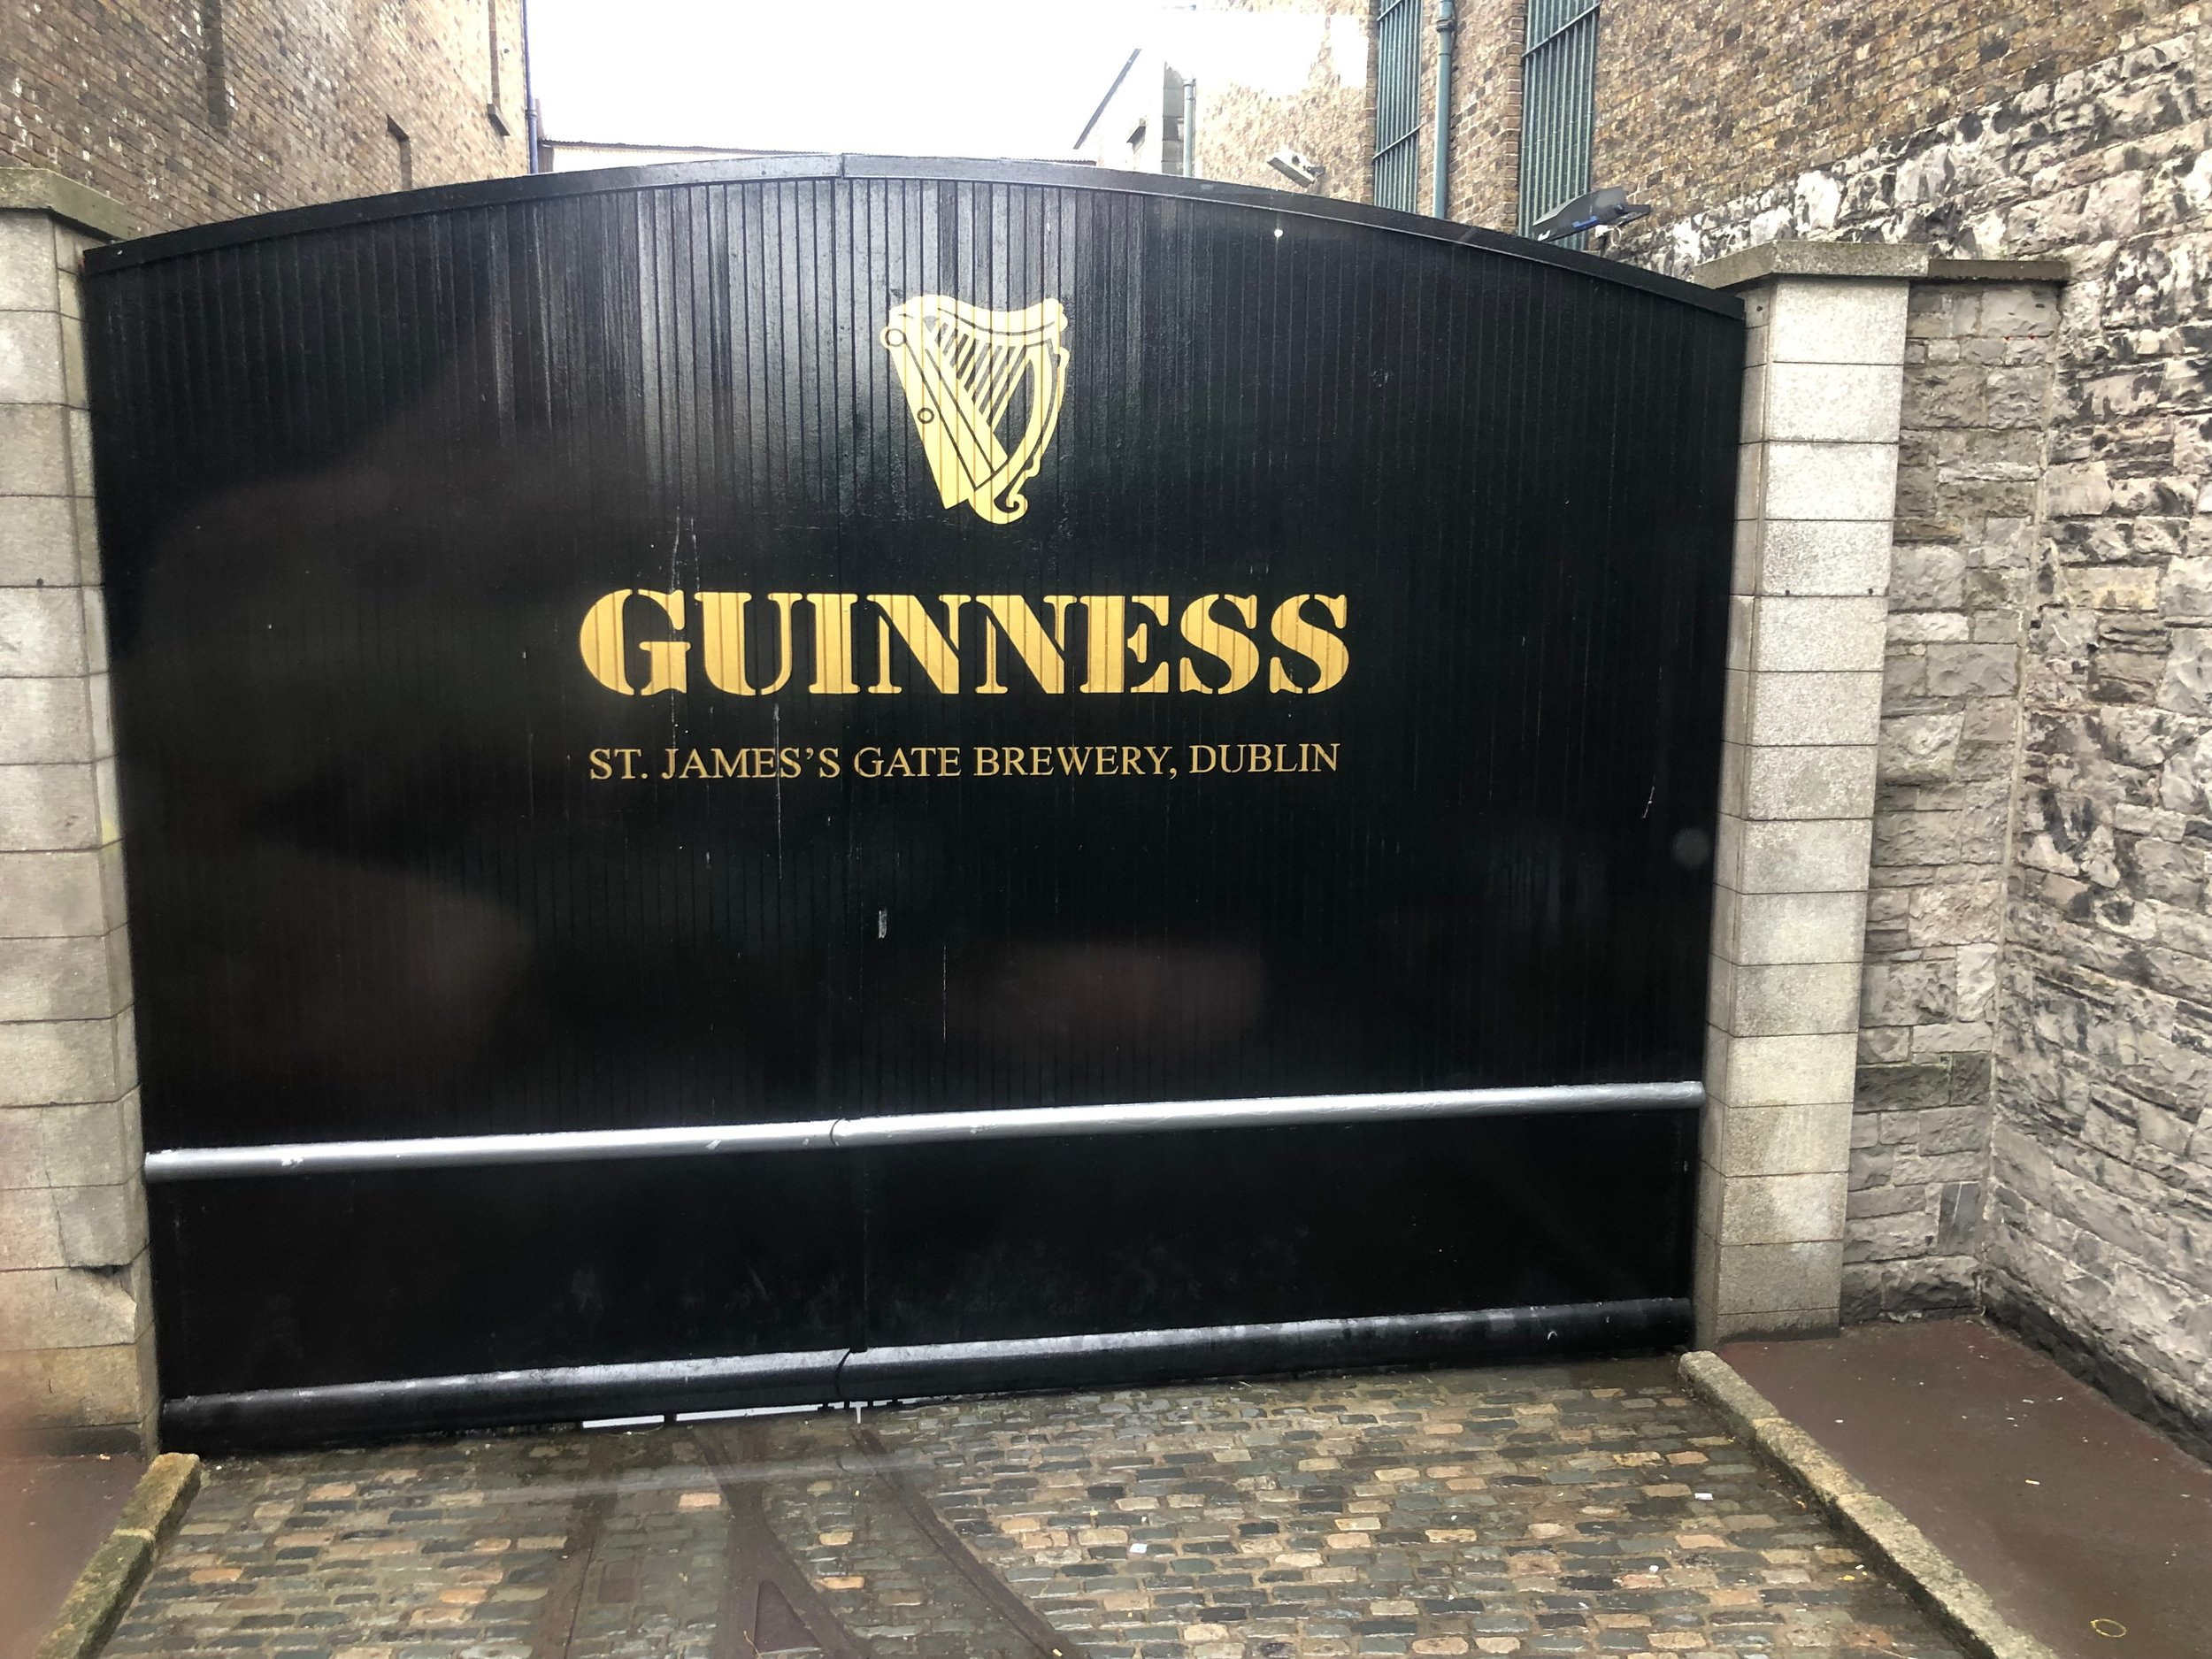 After traveling around Dublin for a few days we finally realized that all roads lead to the St James Gate and the Guinness Brewery. Guinness has been in operation for hundreds of years and been a huge influence on the city and country. If you stop at any pub and ask for a pint, it is understood that you are ordering a pint of Guinness. One morning while we were in Dublin we did the brewery.